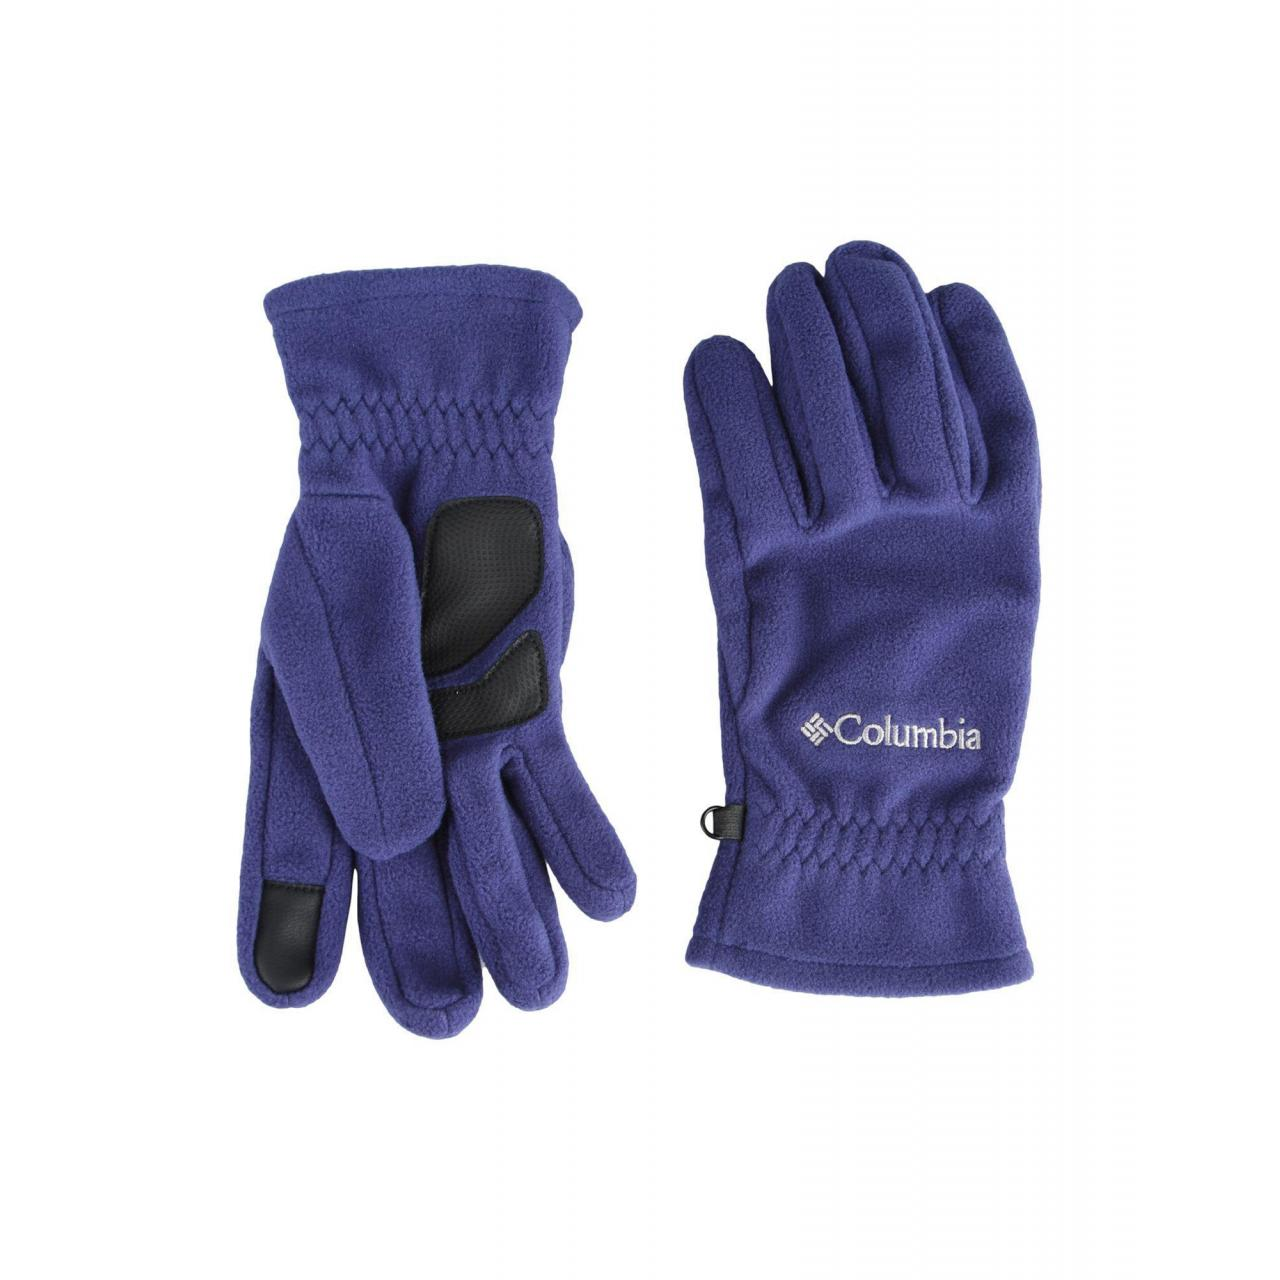 Wholesale COLUMBIA women Accessories Gloves Dark blue,columbia jacket sale outlet,finest selection from china suppliers